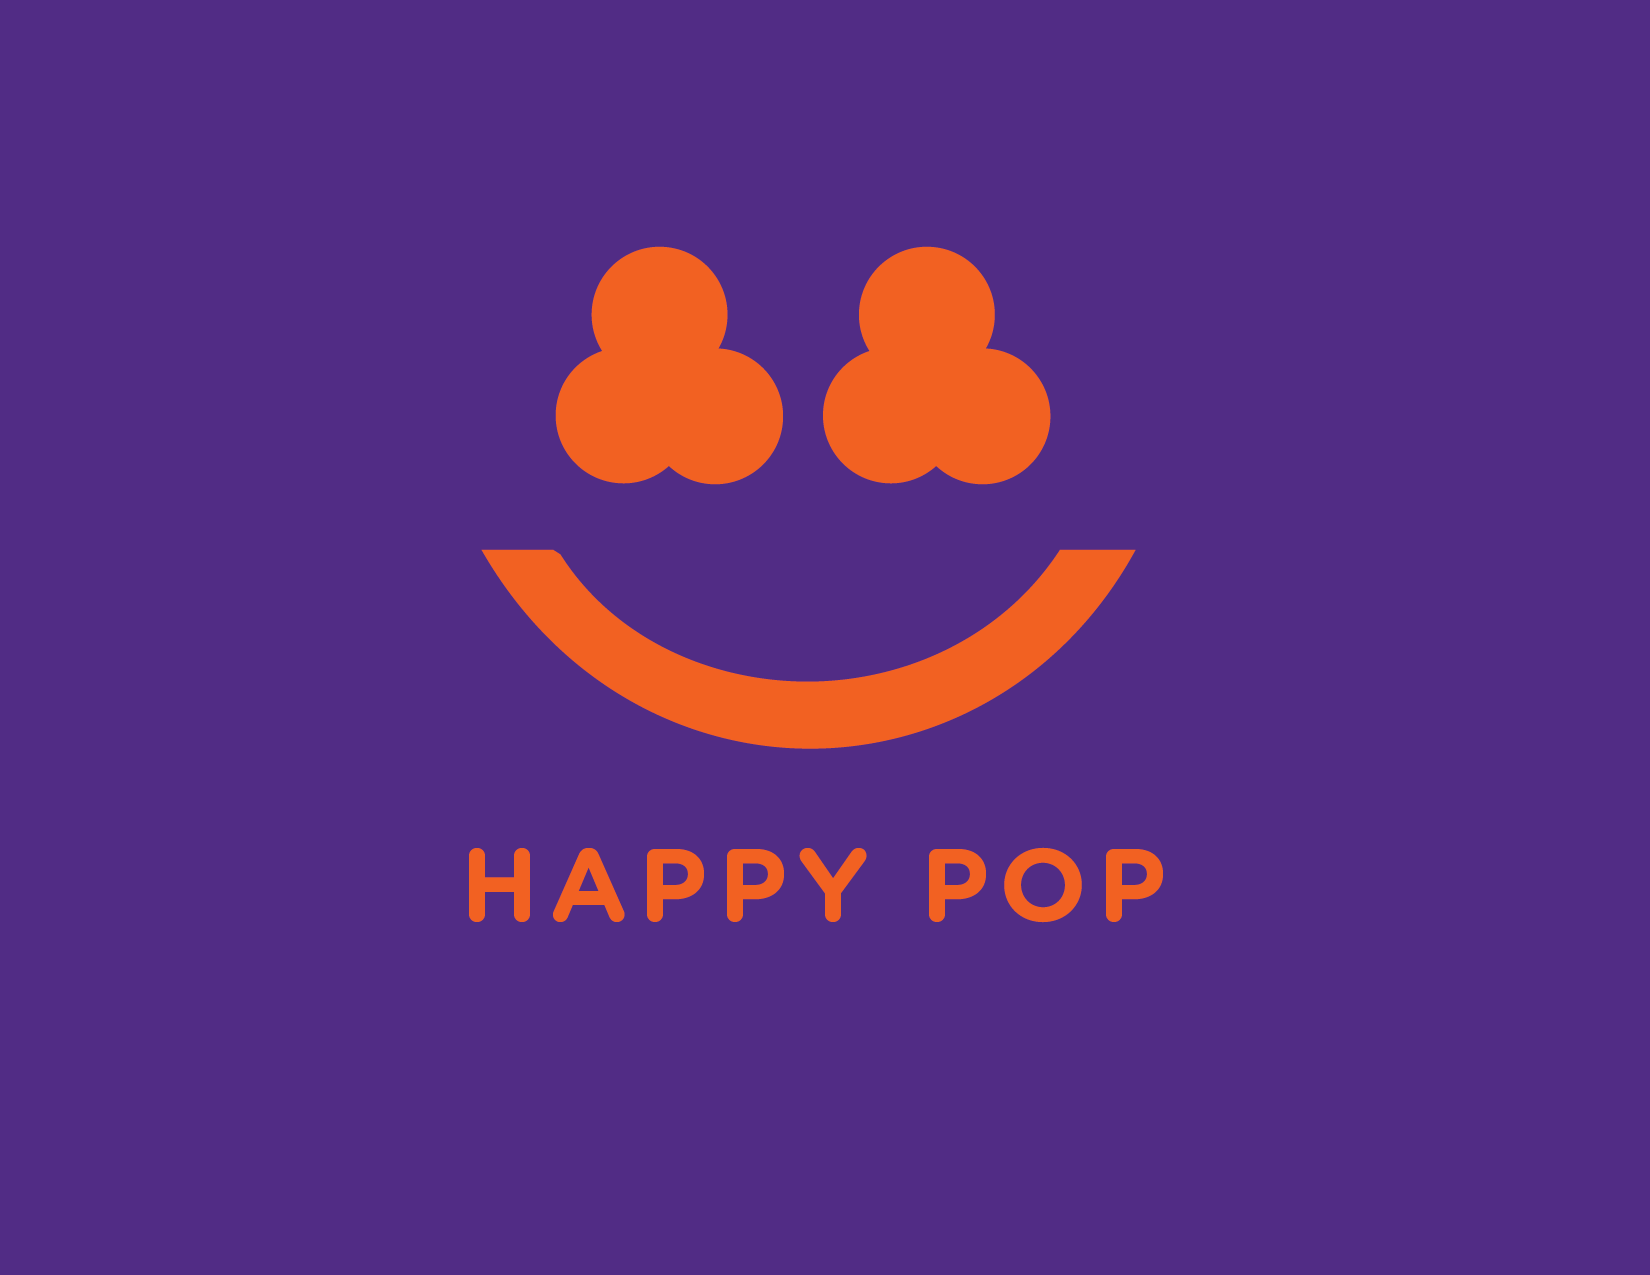 Happy Pop (San Pedro) logo